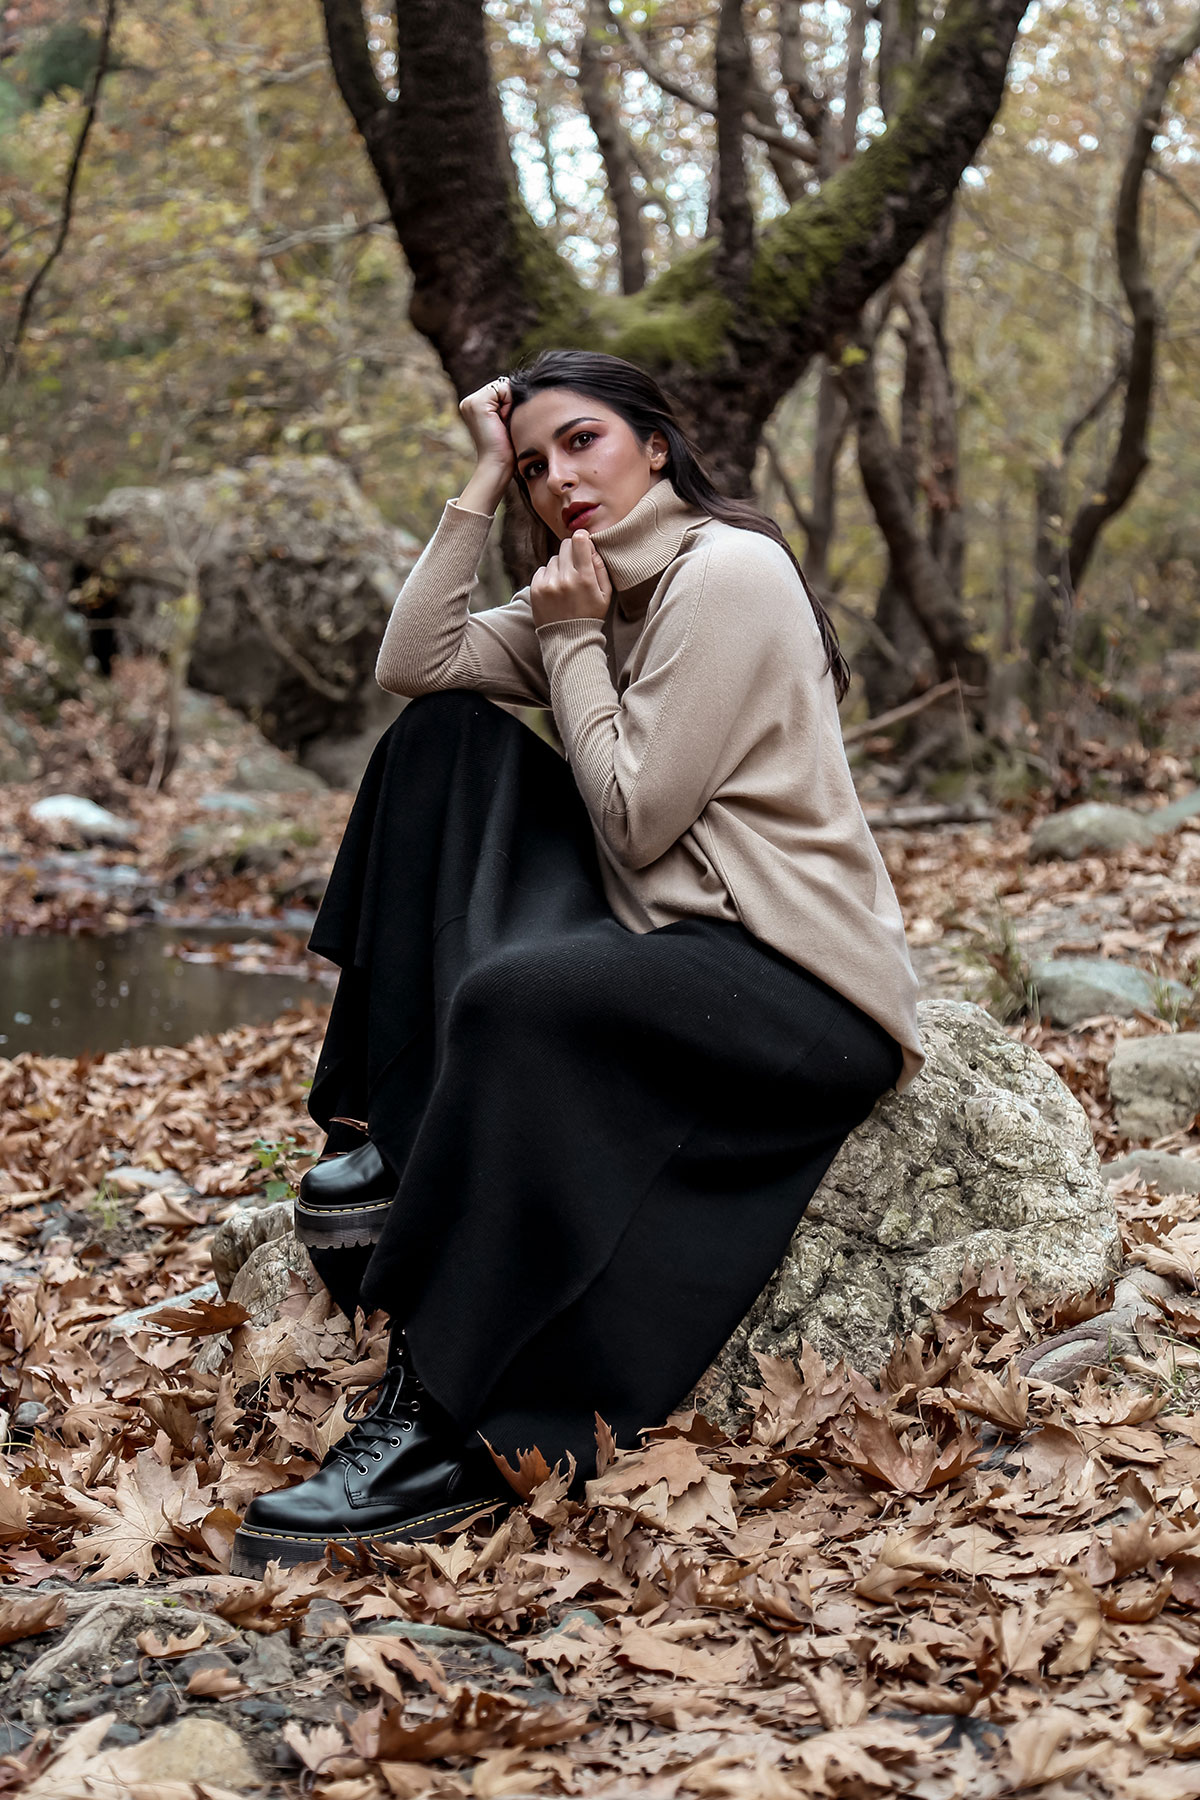 Fall Fashion - favourite fall wardrobe staples by Stella Asteria - wearing turtleneck sweater with knit skirt and Dr Martens boots